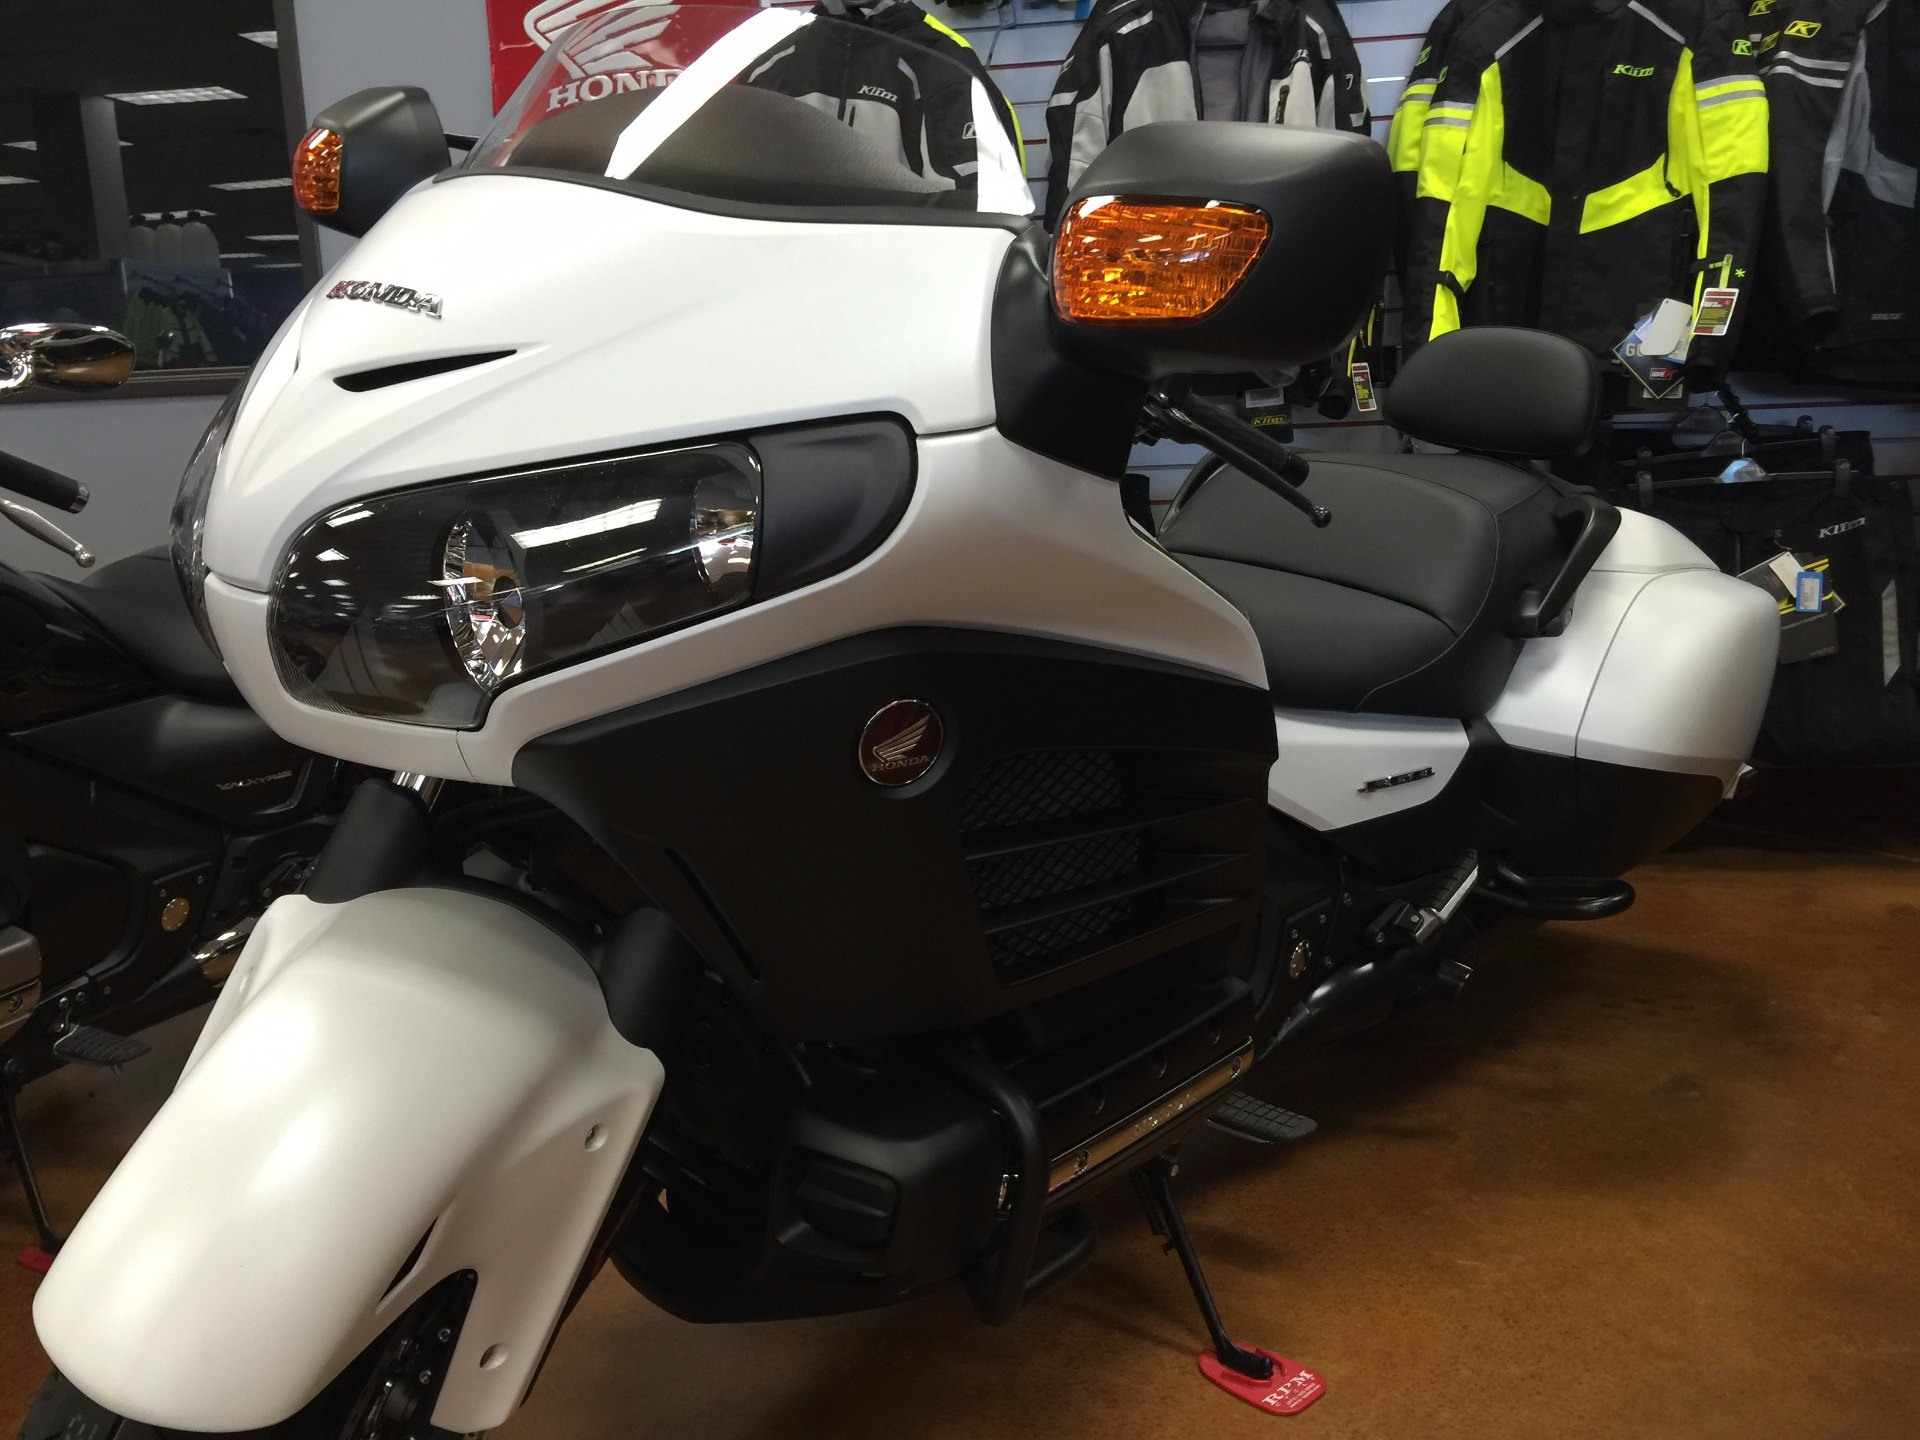 2016 Honda Gold Wing F6B in Dallas, Texas